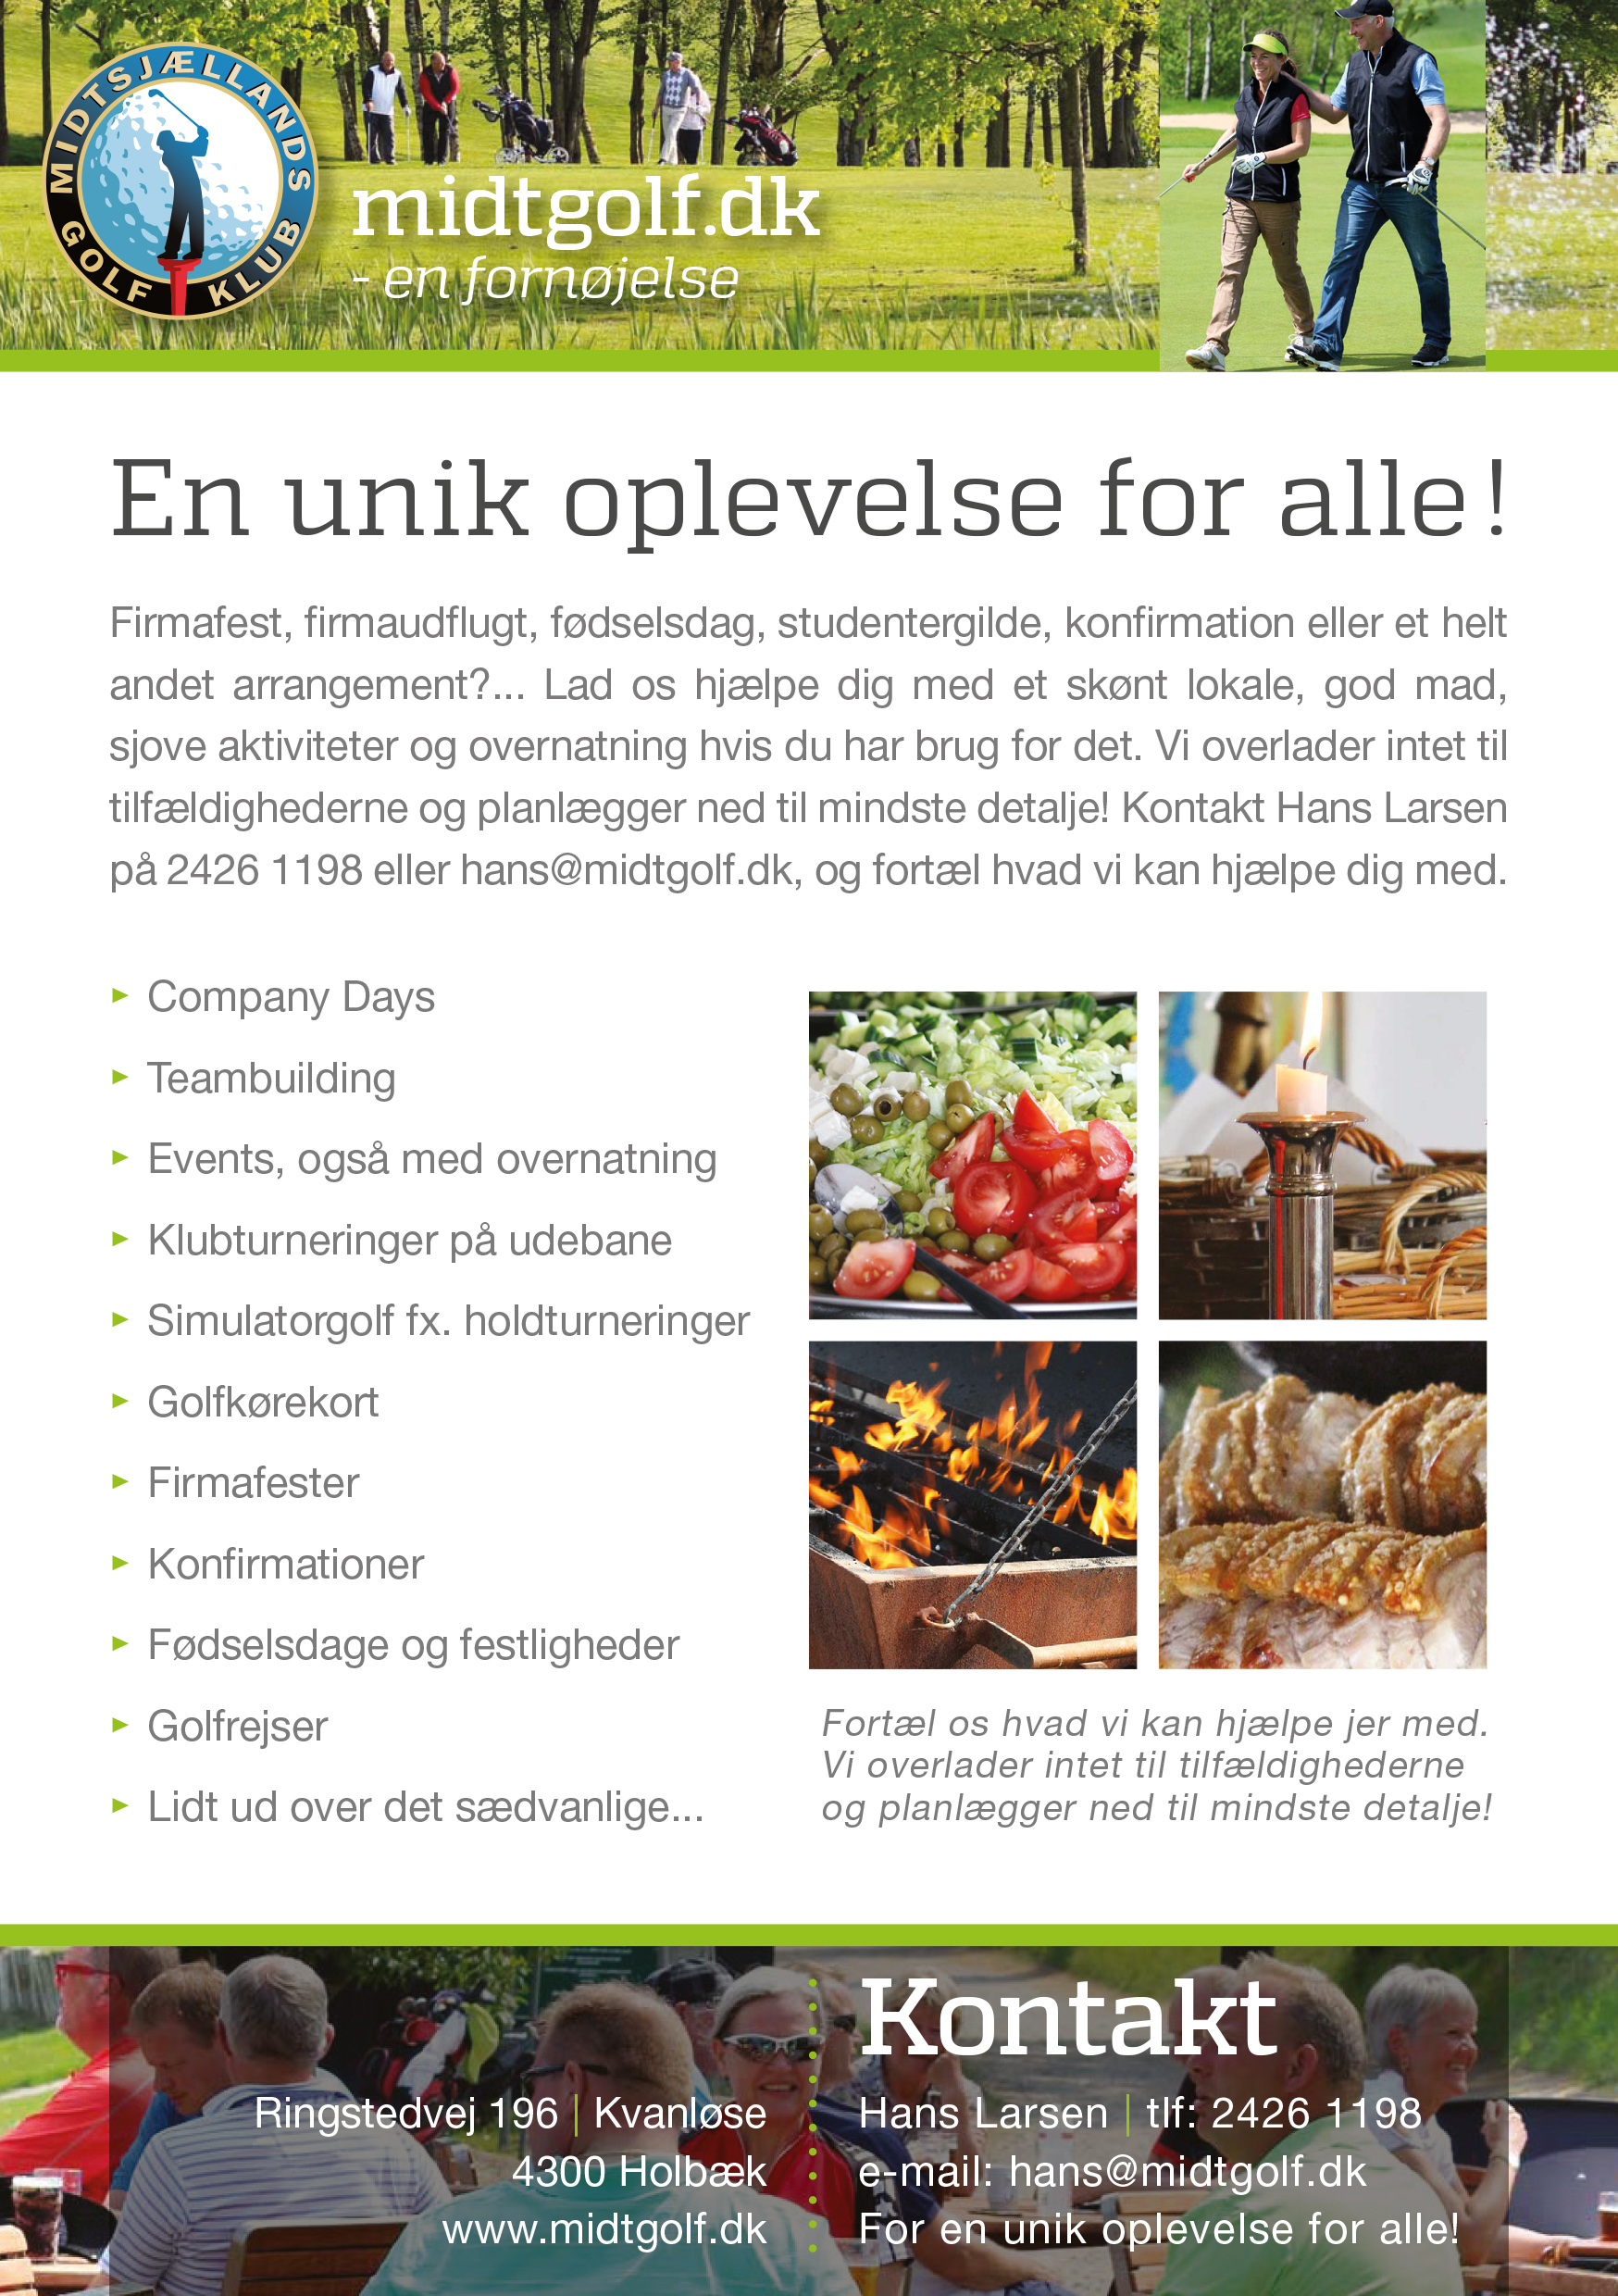 MidtGolf A5 flyer 04 2016 arrangementer 002